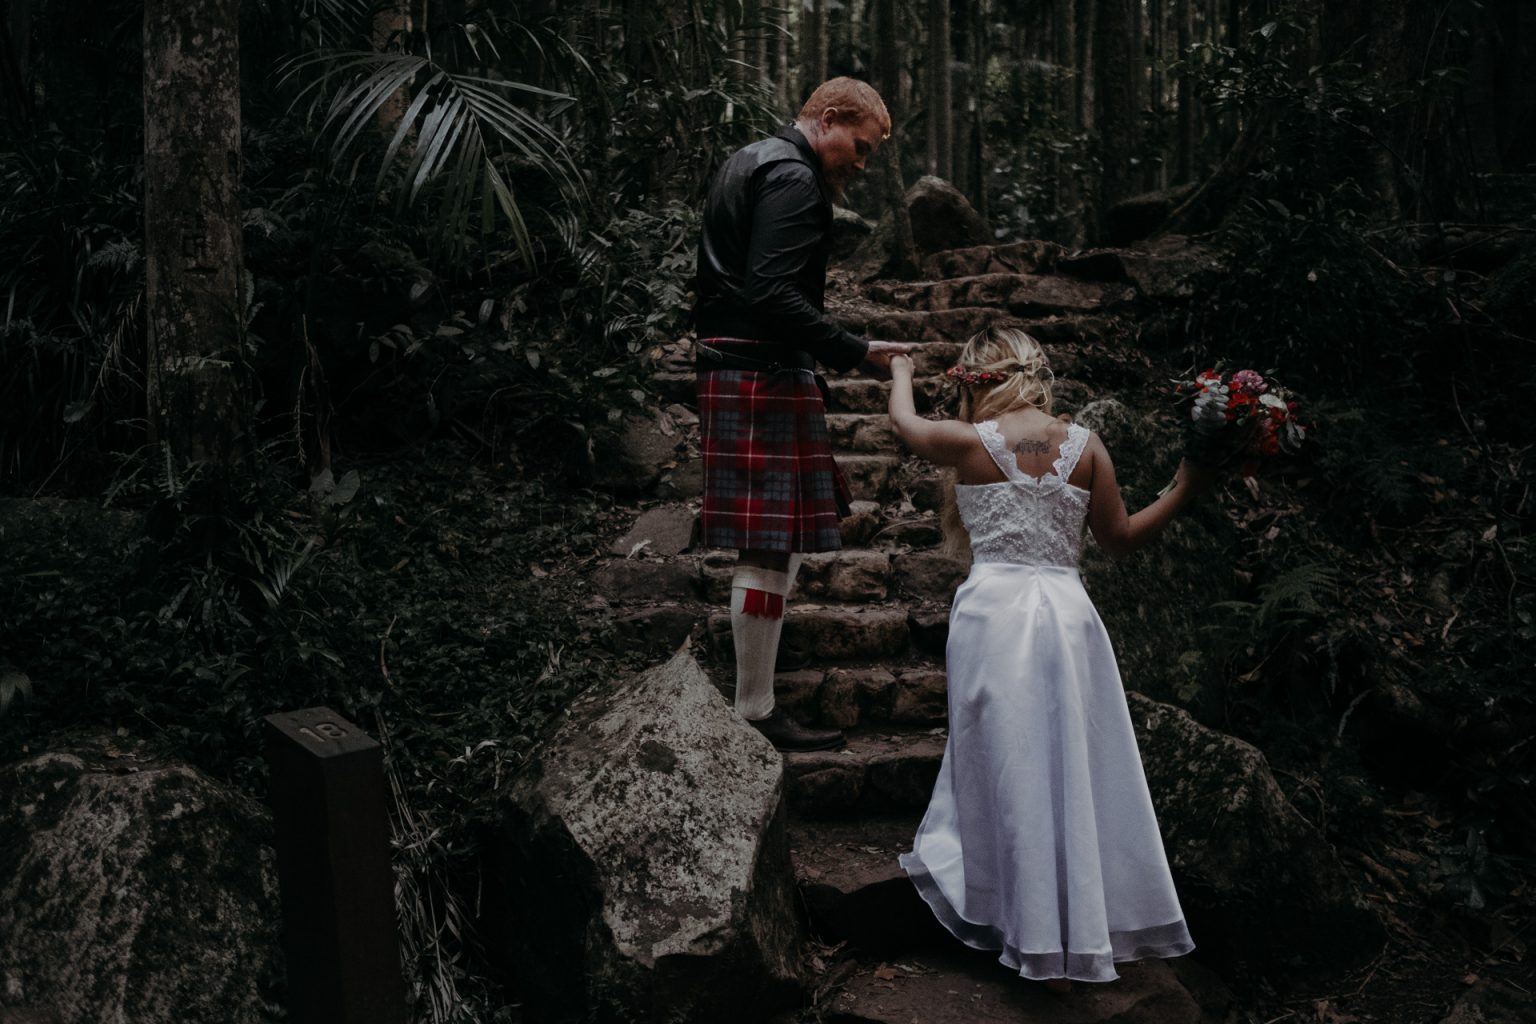 groom helping bride up stairs forest